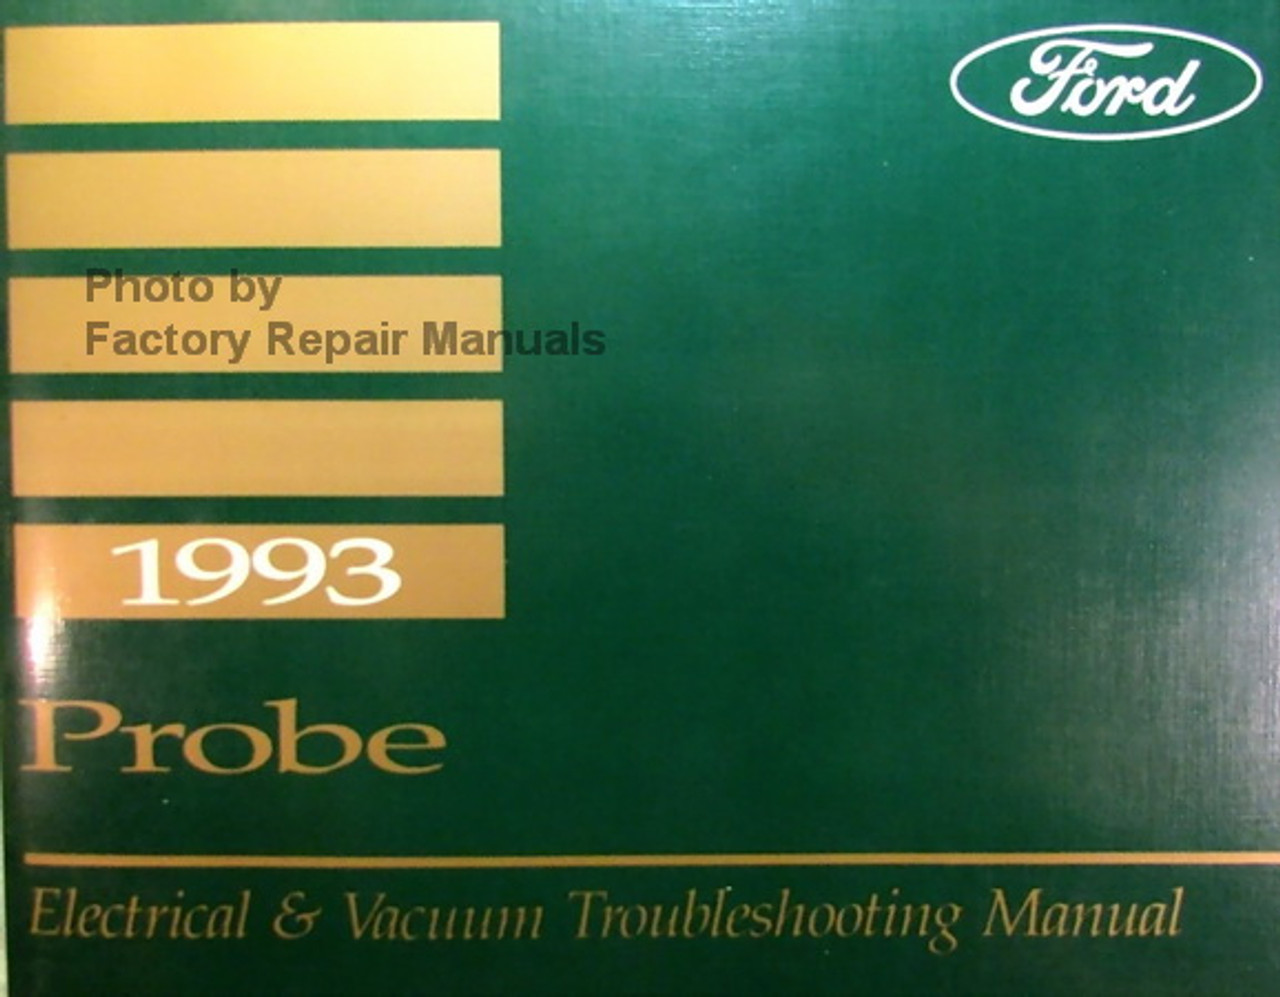 ford probe wiring diagrams 1993 ford probe electrical   vacuum troubleshooting manual wiring  1993 ford probe electrical   vacuum